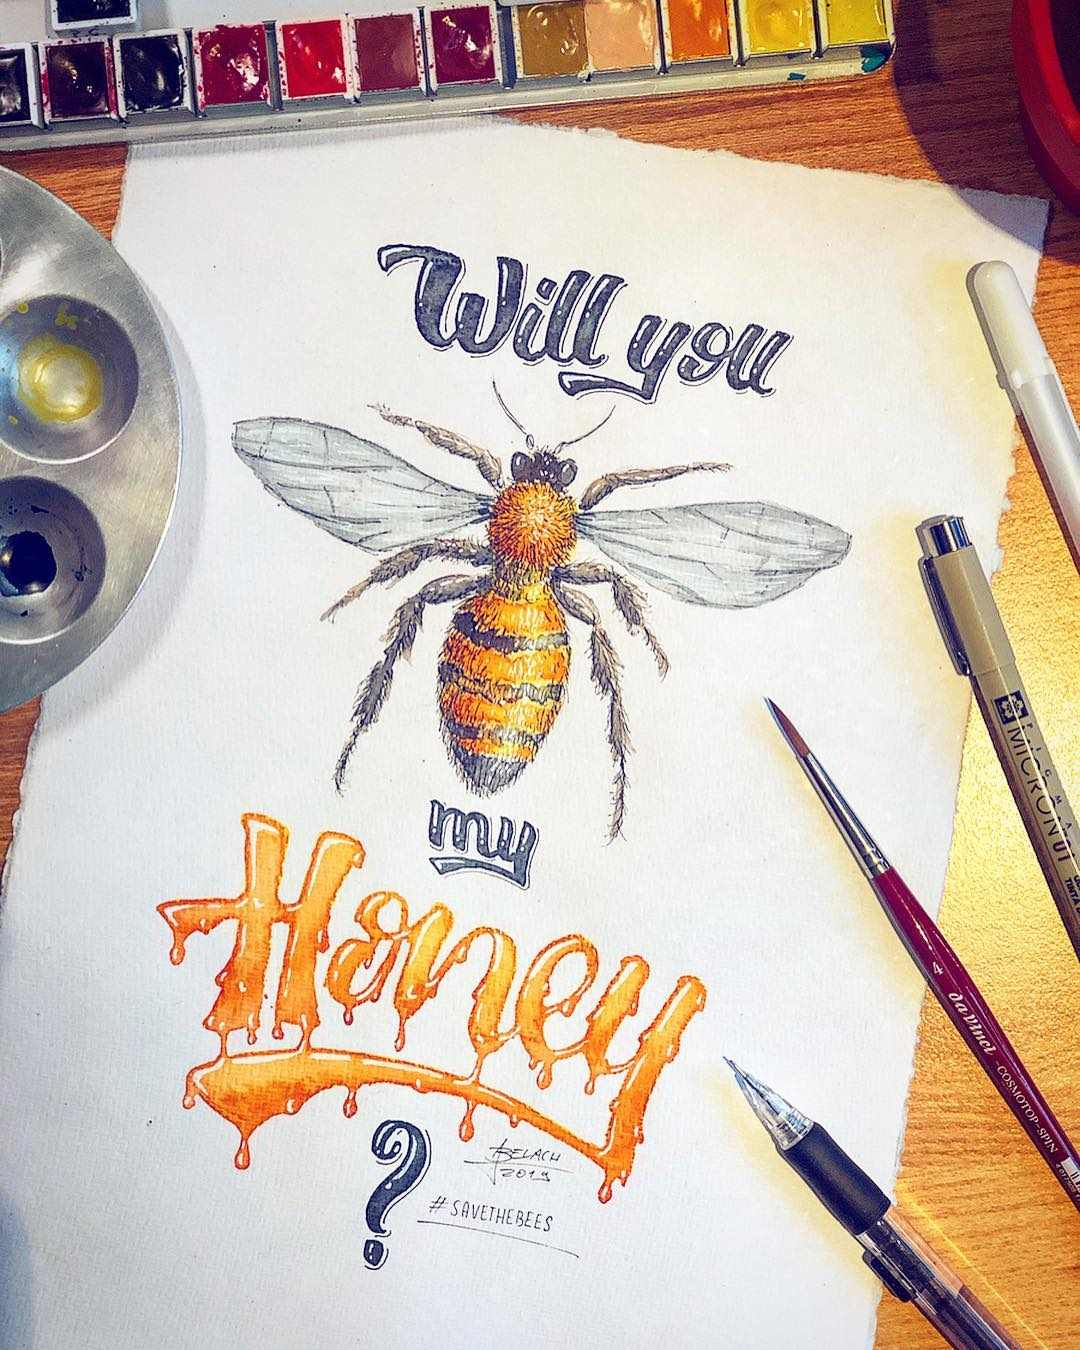 Will you bee my honey - Handlettering mit gezeichneter Biene